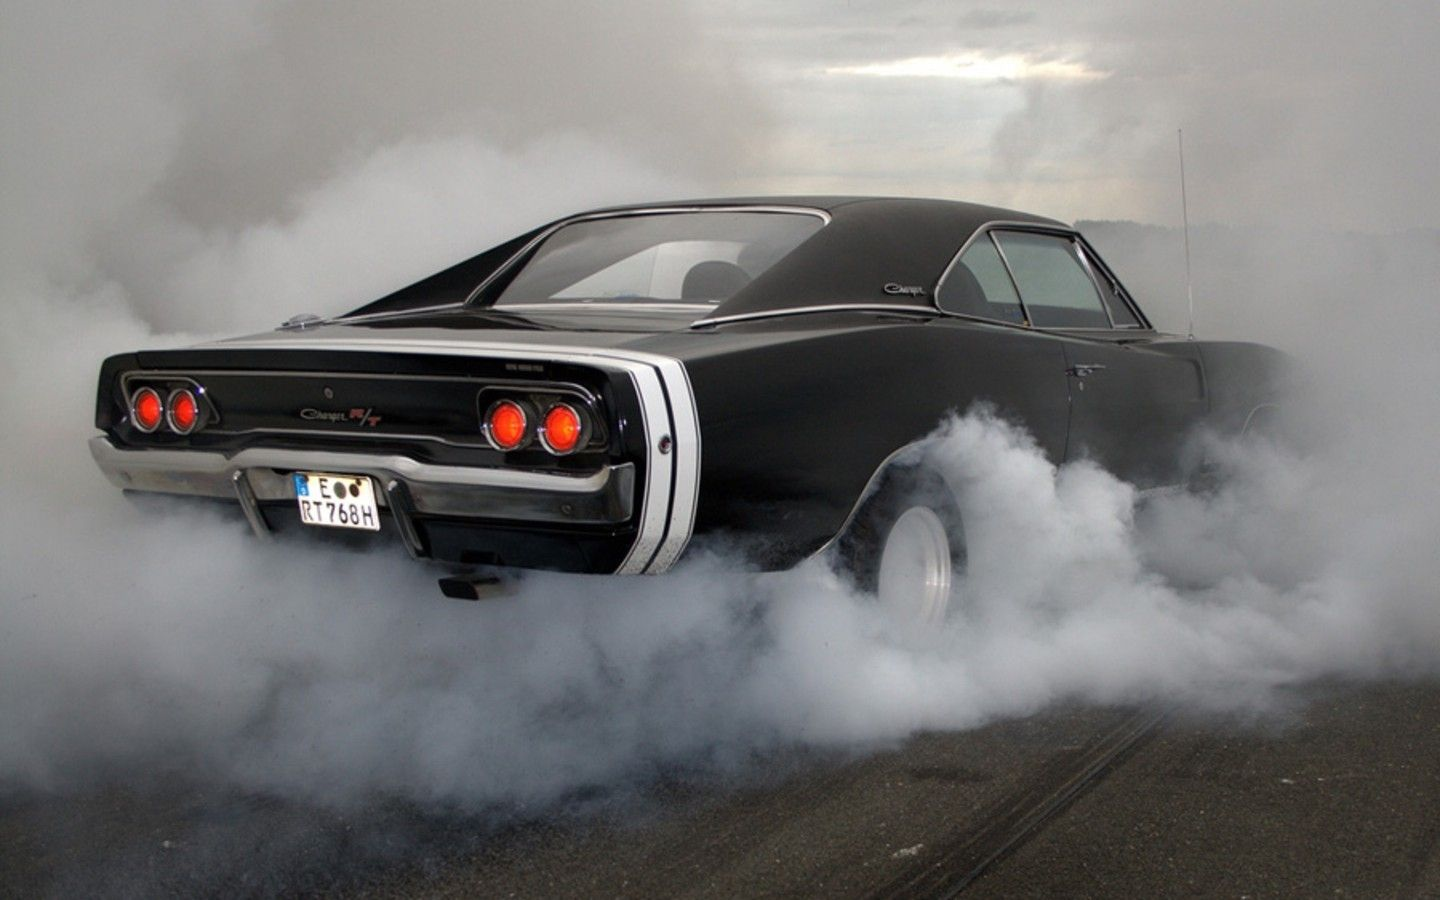 Download Wallpapers Download 1440x900 Cars Muscle Cars Dodge Vehicles 1968 Burnout Dodge Charger Musc Dodge Charger Rt 1968 Dodge Charger Hot Rods Cars Muscle